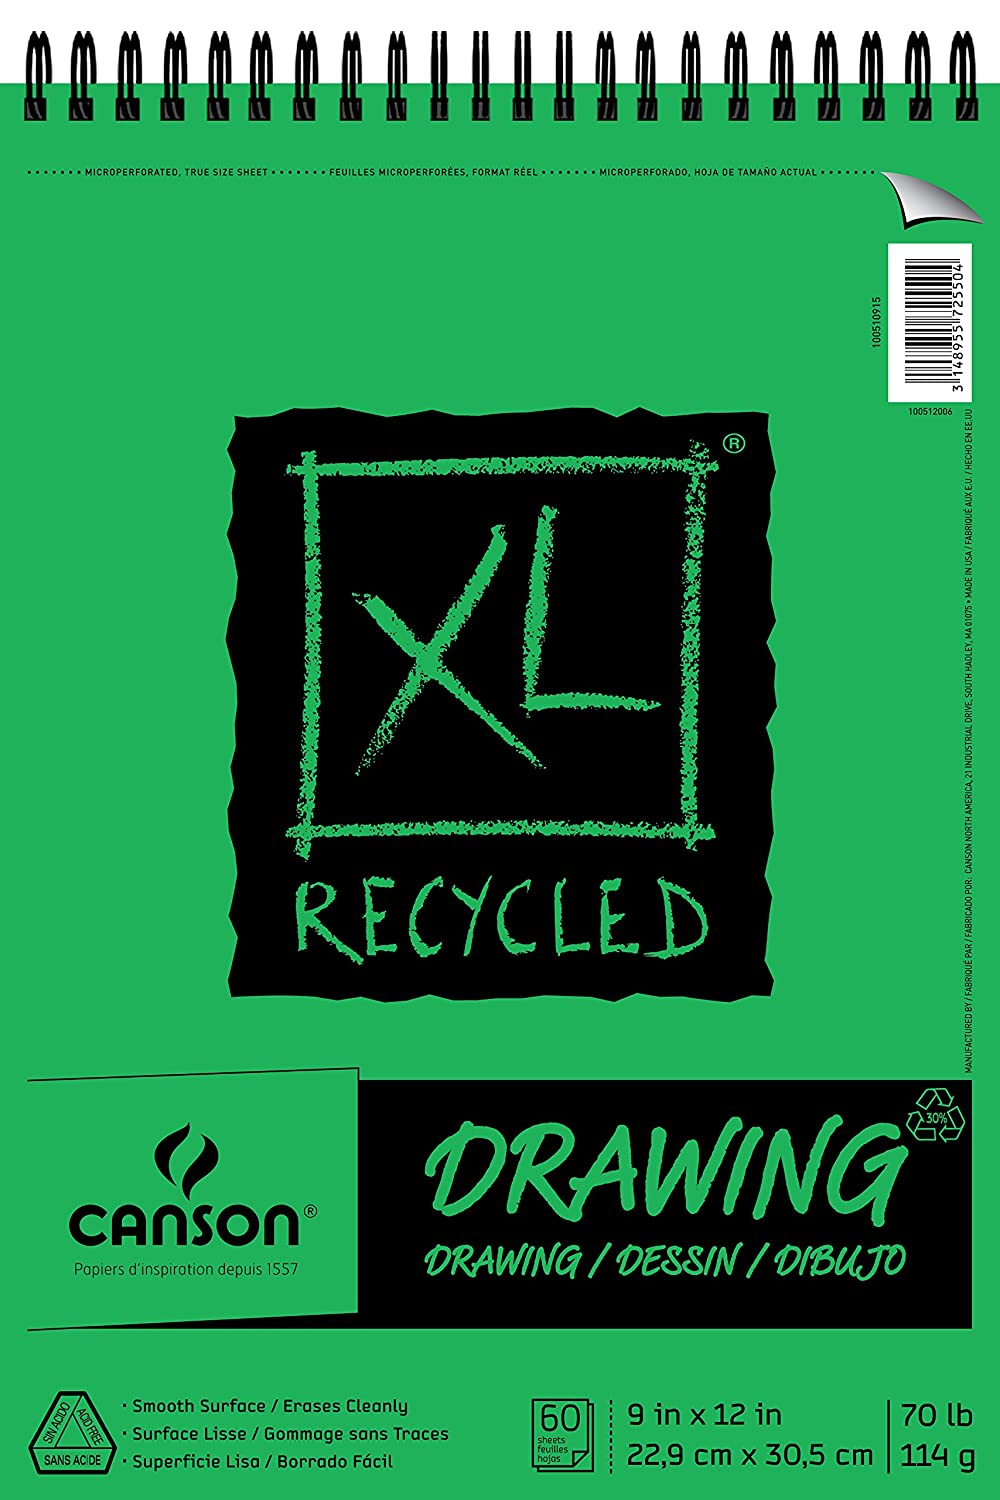 Canson XL Series Recycled Drawing Paper Pad, Top Wire Bound, 70 Pound, 11 x 14 Inch, 60 Sheets CANSON Inc 100510916